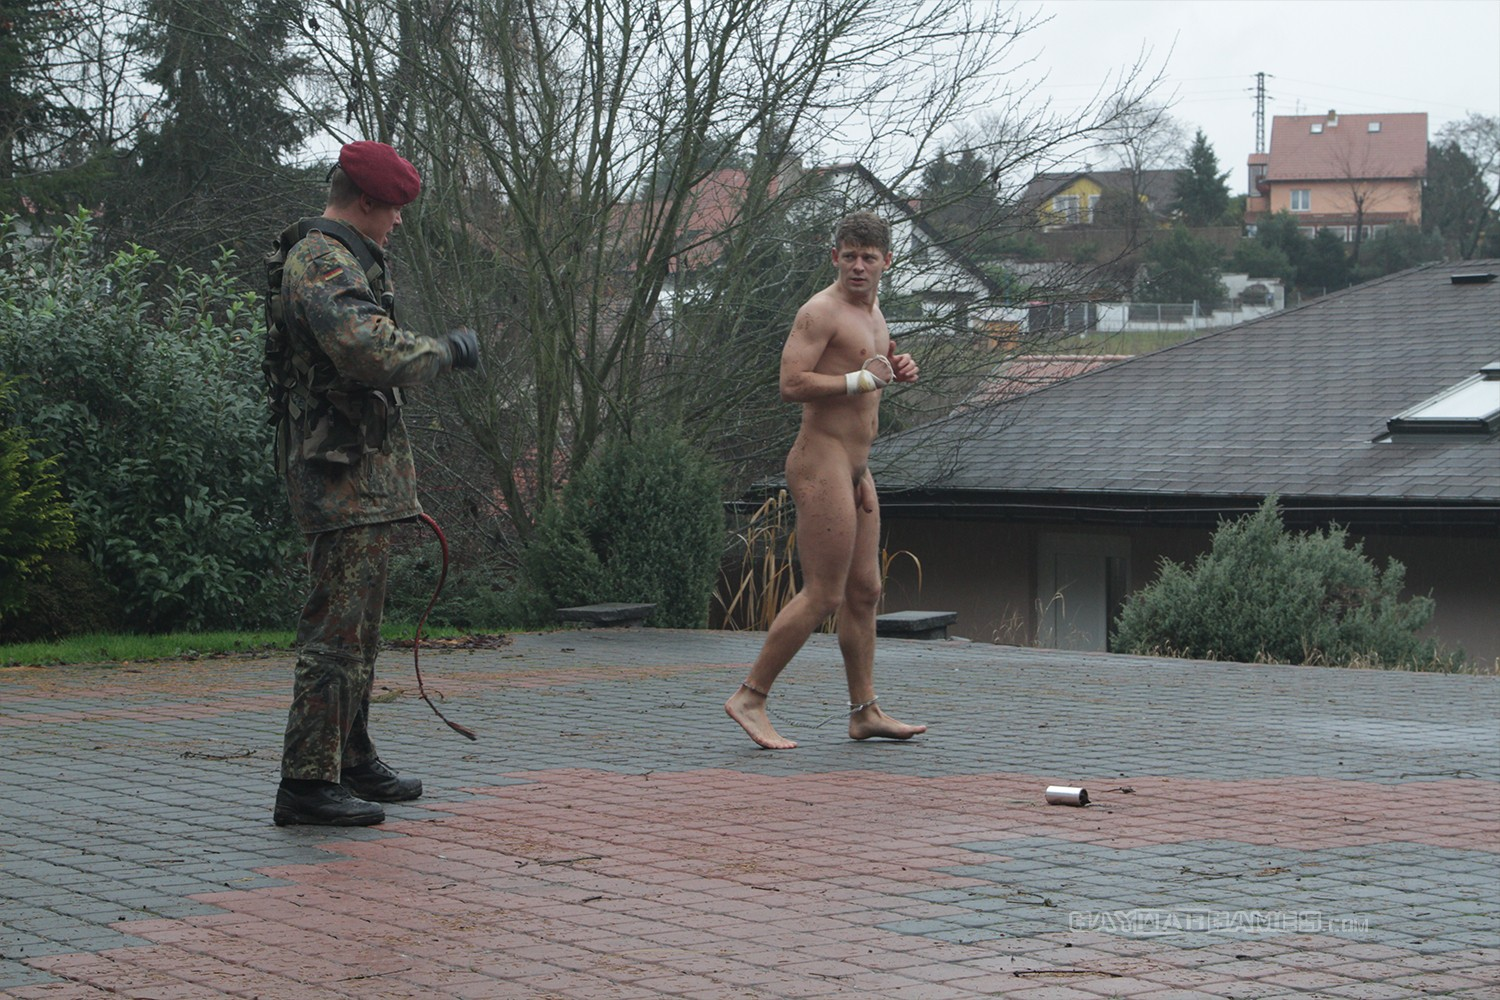 Something pictures of homosexual activities in wars pity